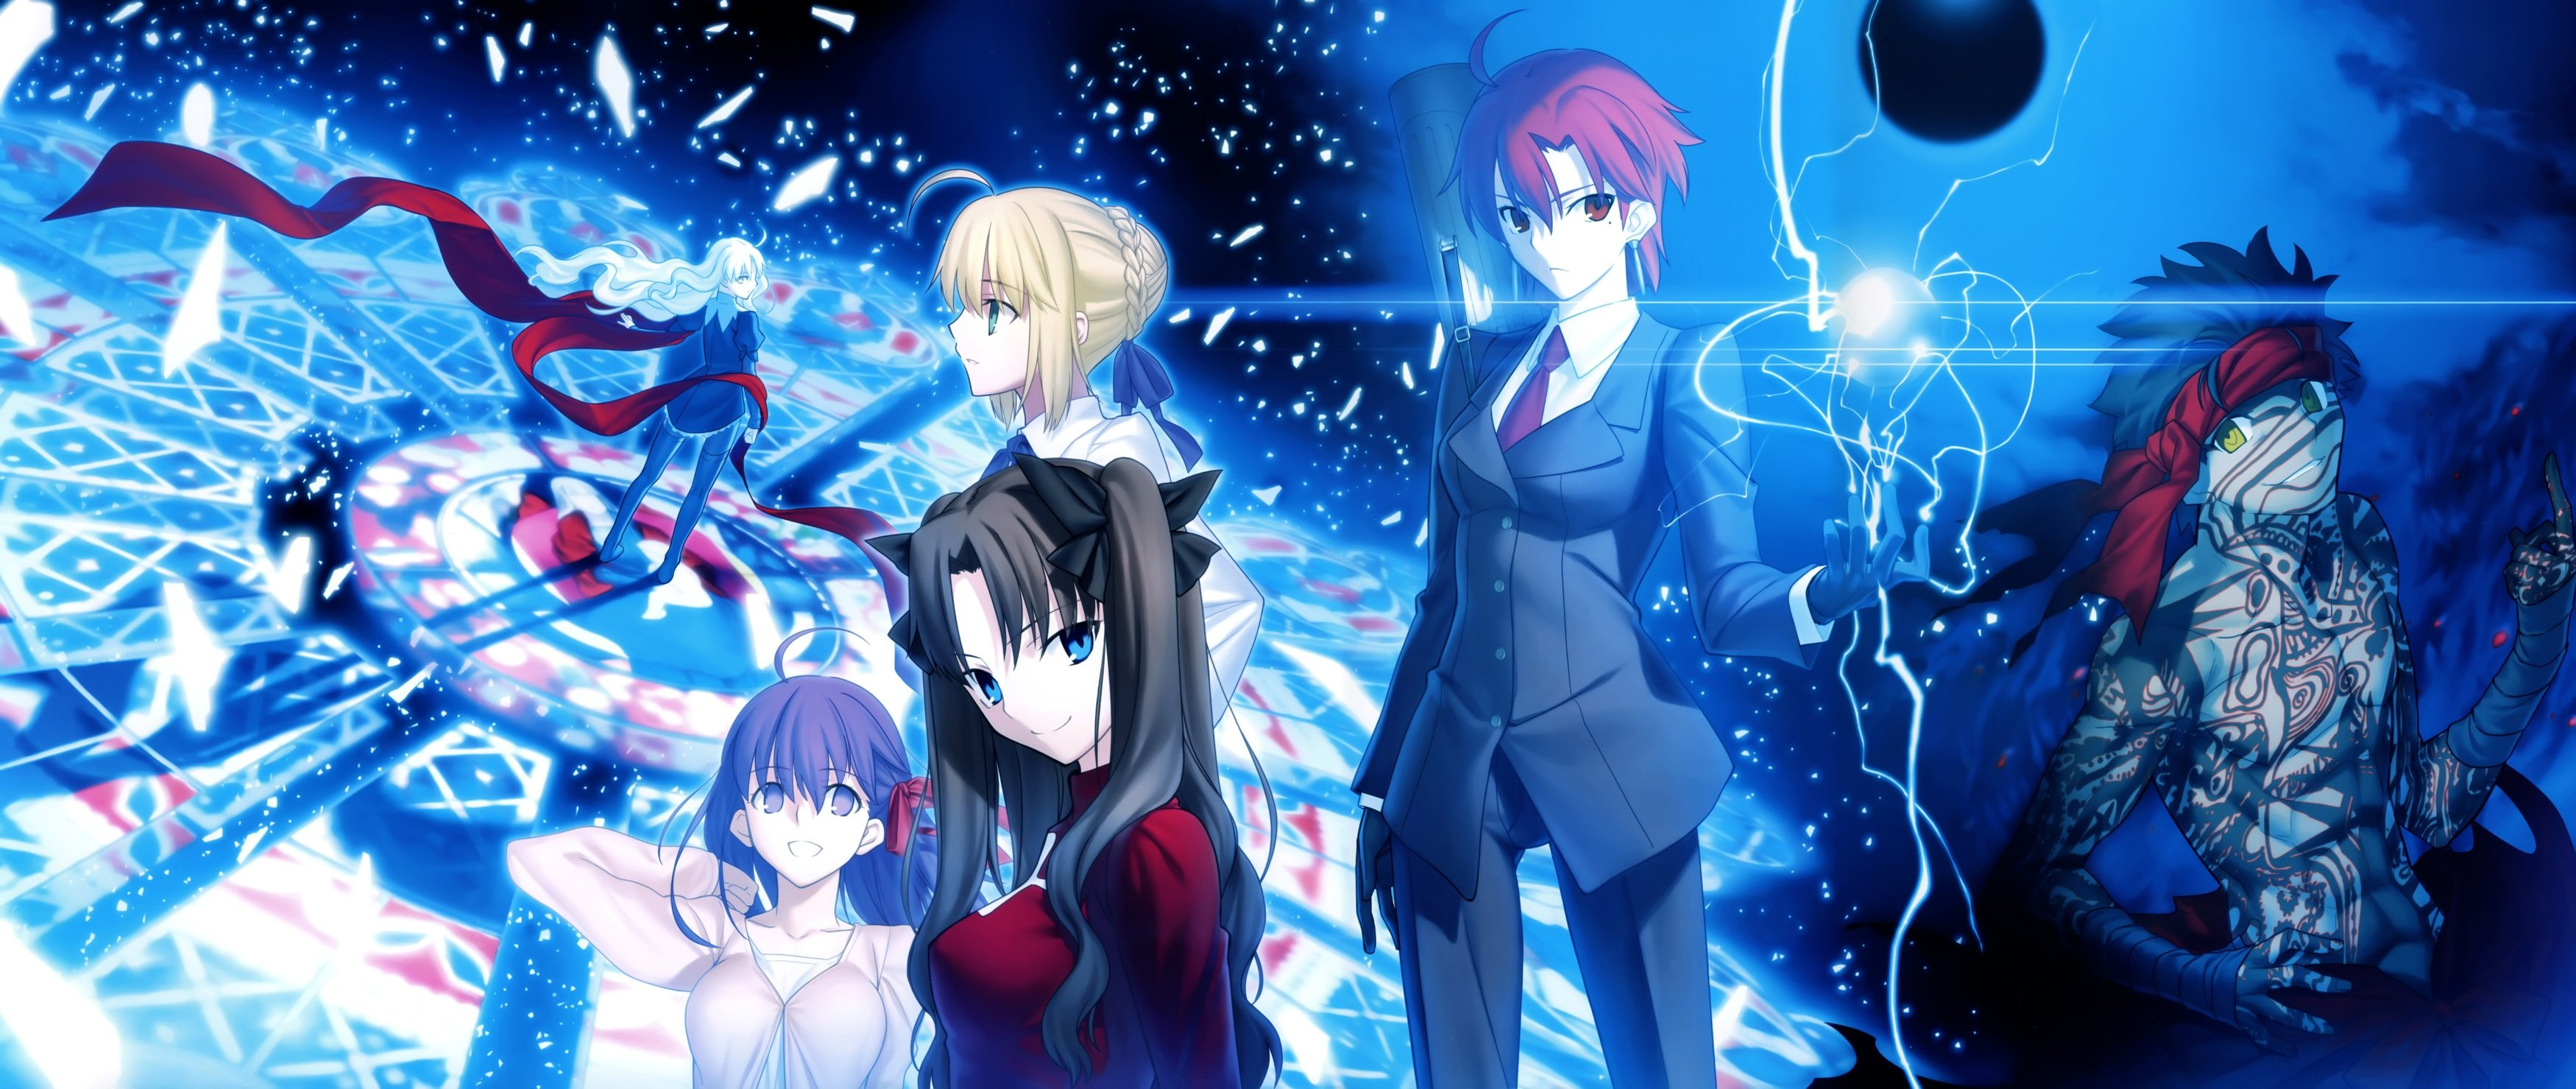 Your Favorite Wallpaper Fatestaynight